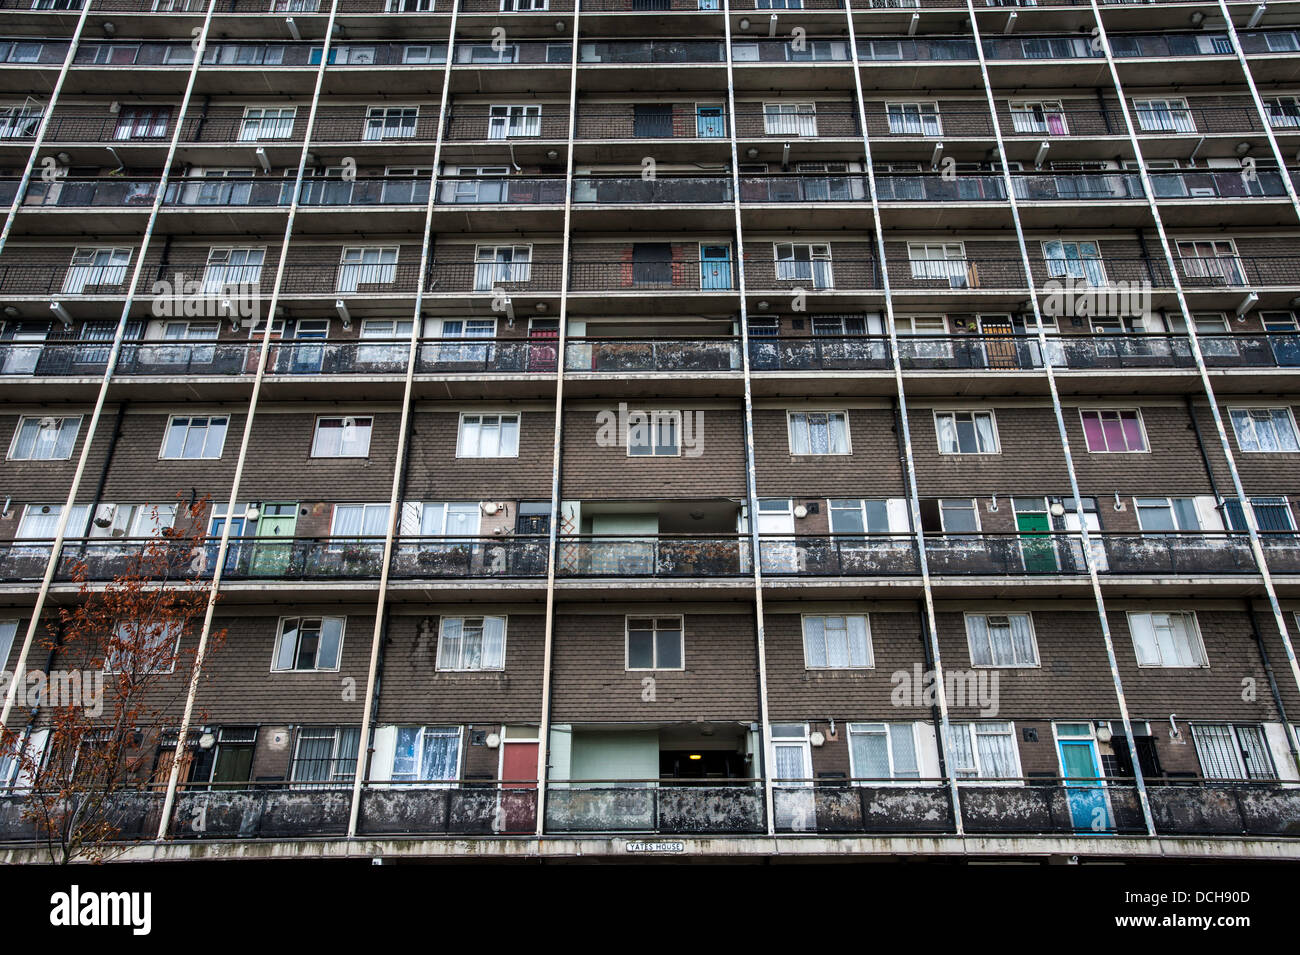 Council estate on Old Ford Road, Hackney, London, United Kingdom - Stock Image